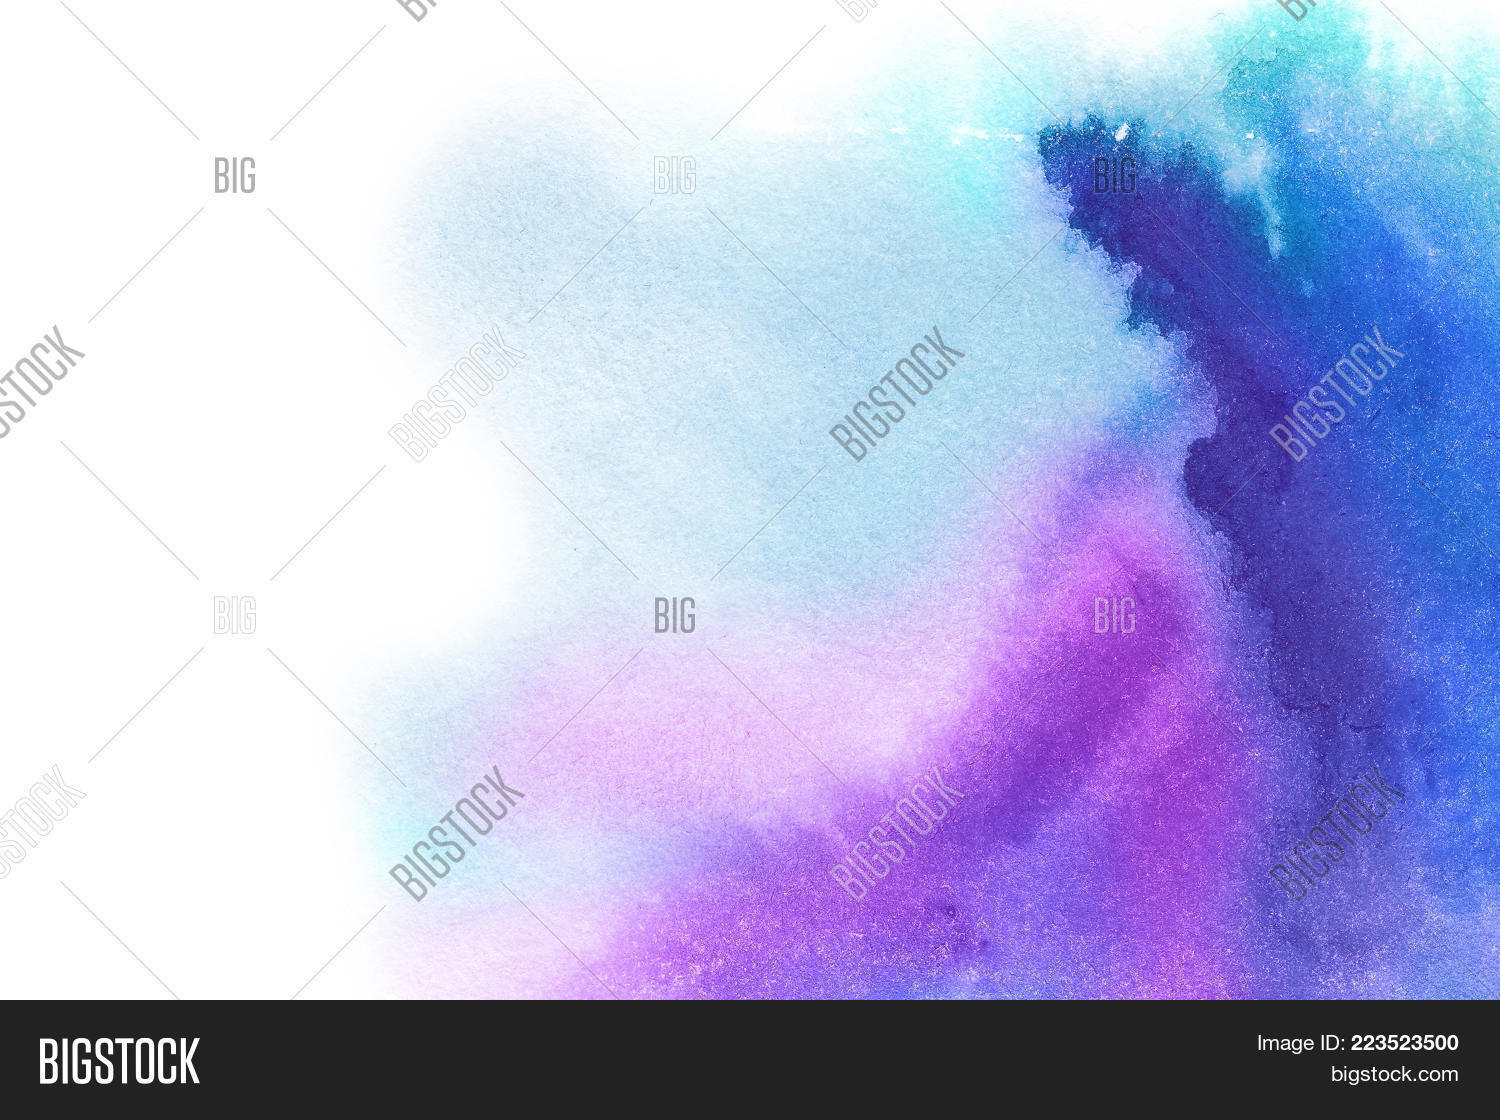 Space,abstract,acrylic,advertizing,art,artistic,backdrop,background,blot,blue,bright,brush,card,color,colorful,composition,creativity,design,effect,element,for,hand,homemade,illustration,image,intensity,lilac,liquid,made,multilayer,paint,paper,pastel,pattern,pink,place,rough,splash,stain,text,texture,the,vibrant,wallpaper,watercolor,waves